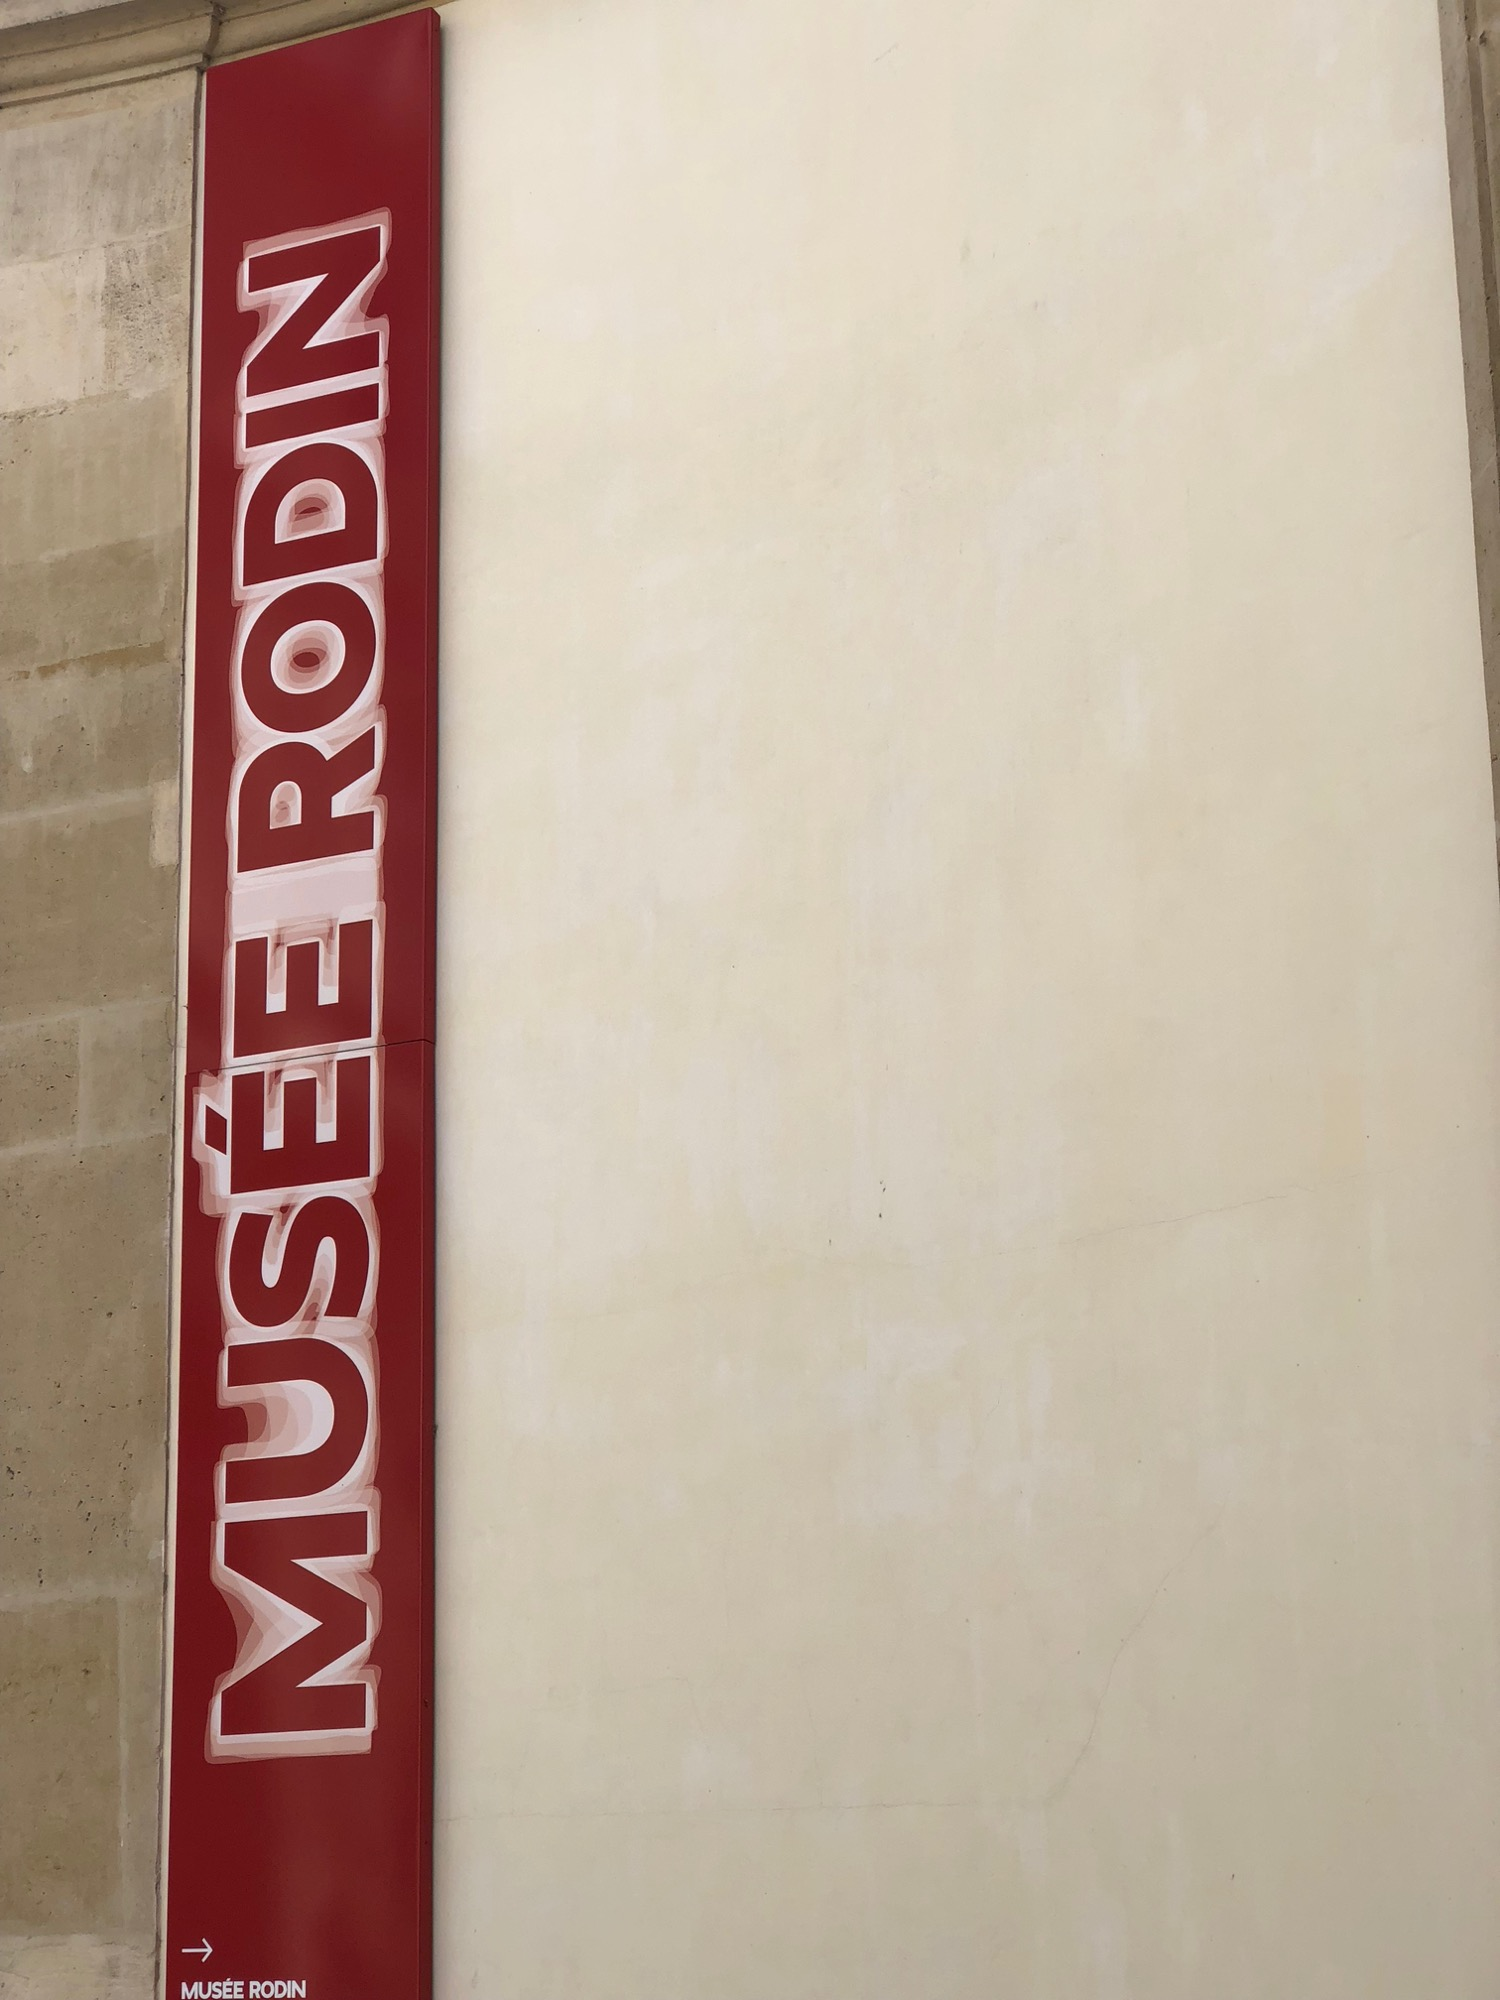 My second stop was the Musee Rodin